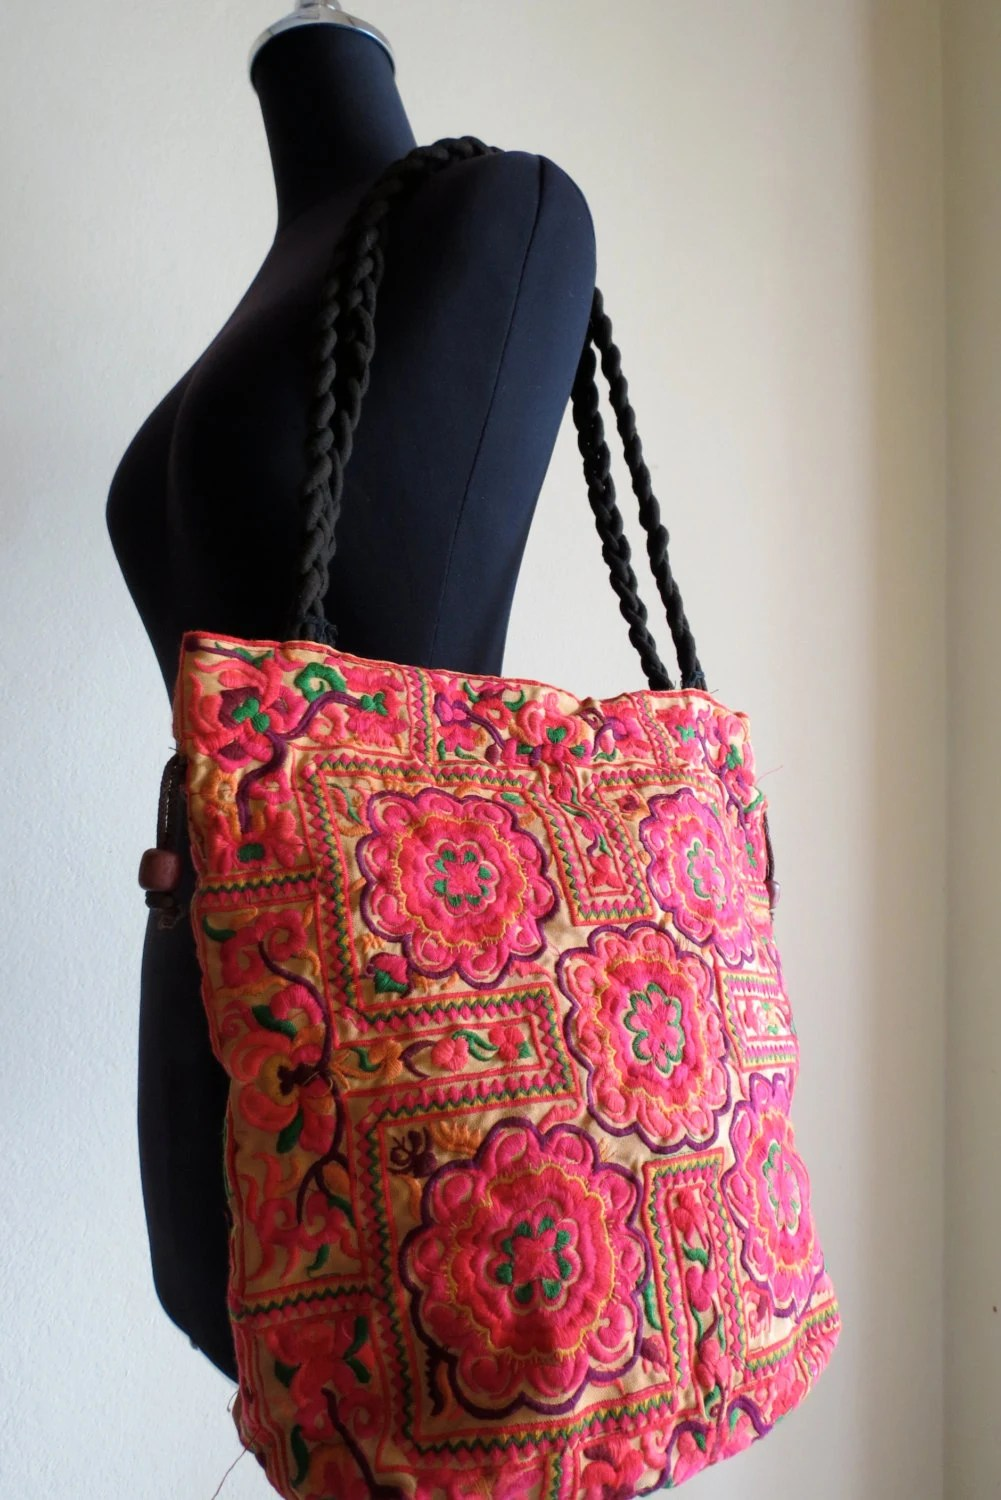 Bohemian bags tote Handbags ethnic style shoulder bags from